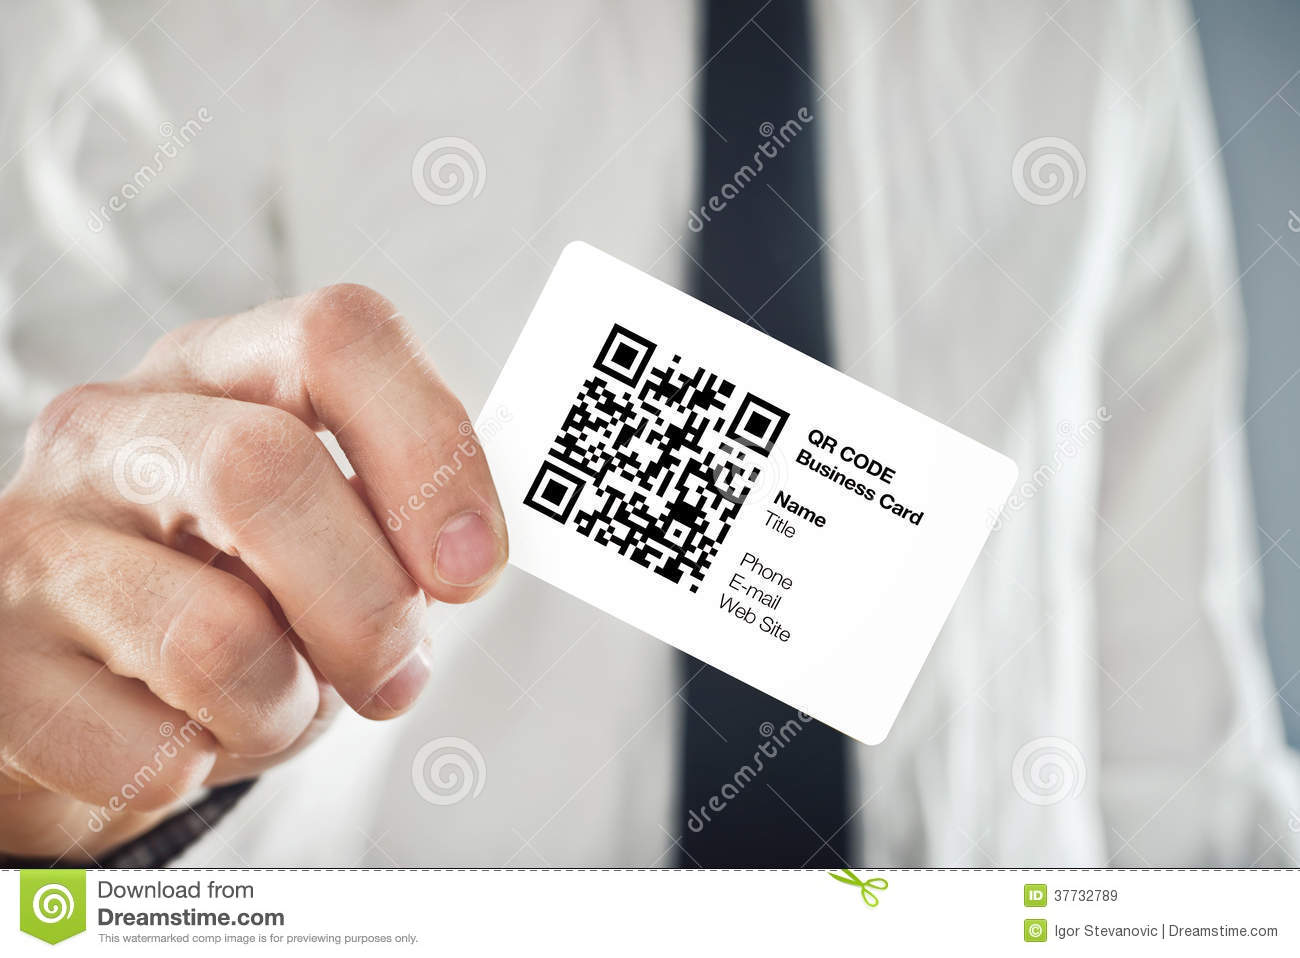 Businessman Holding QR Code Business Card Stock Image - Image of ...